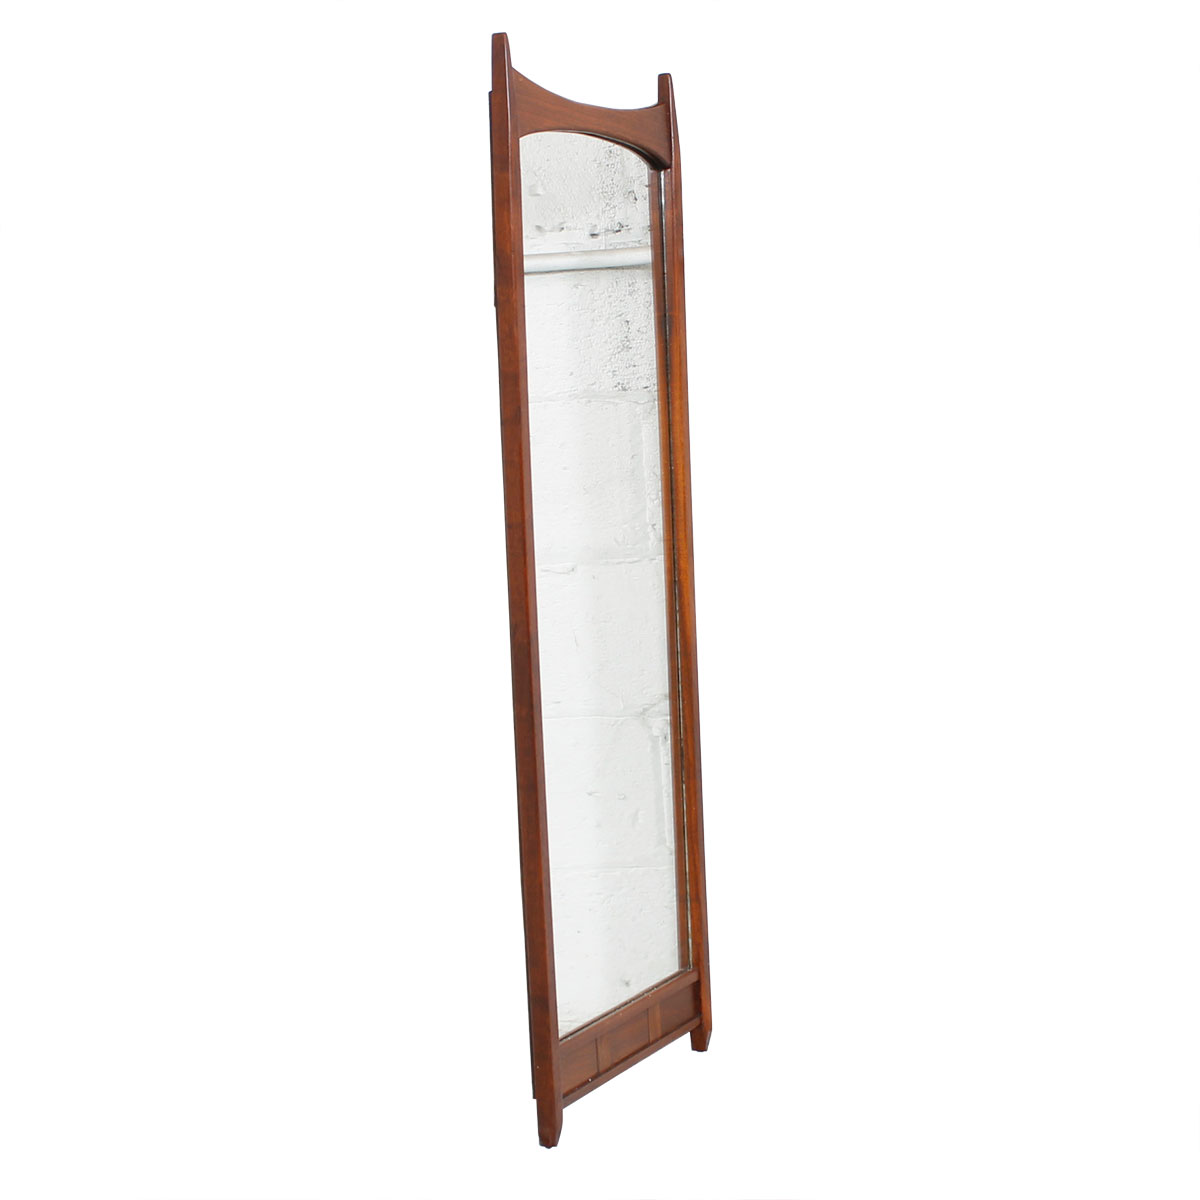 Super-Slim & Tall – Modern Decorative Mirror